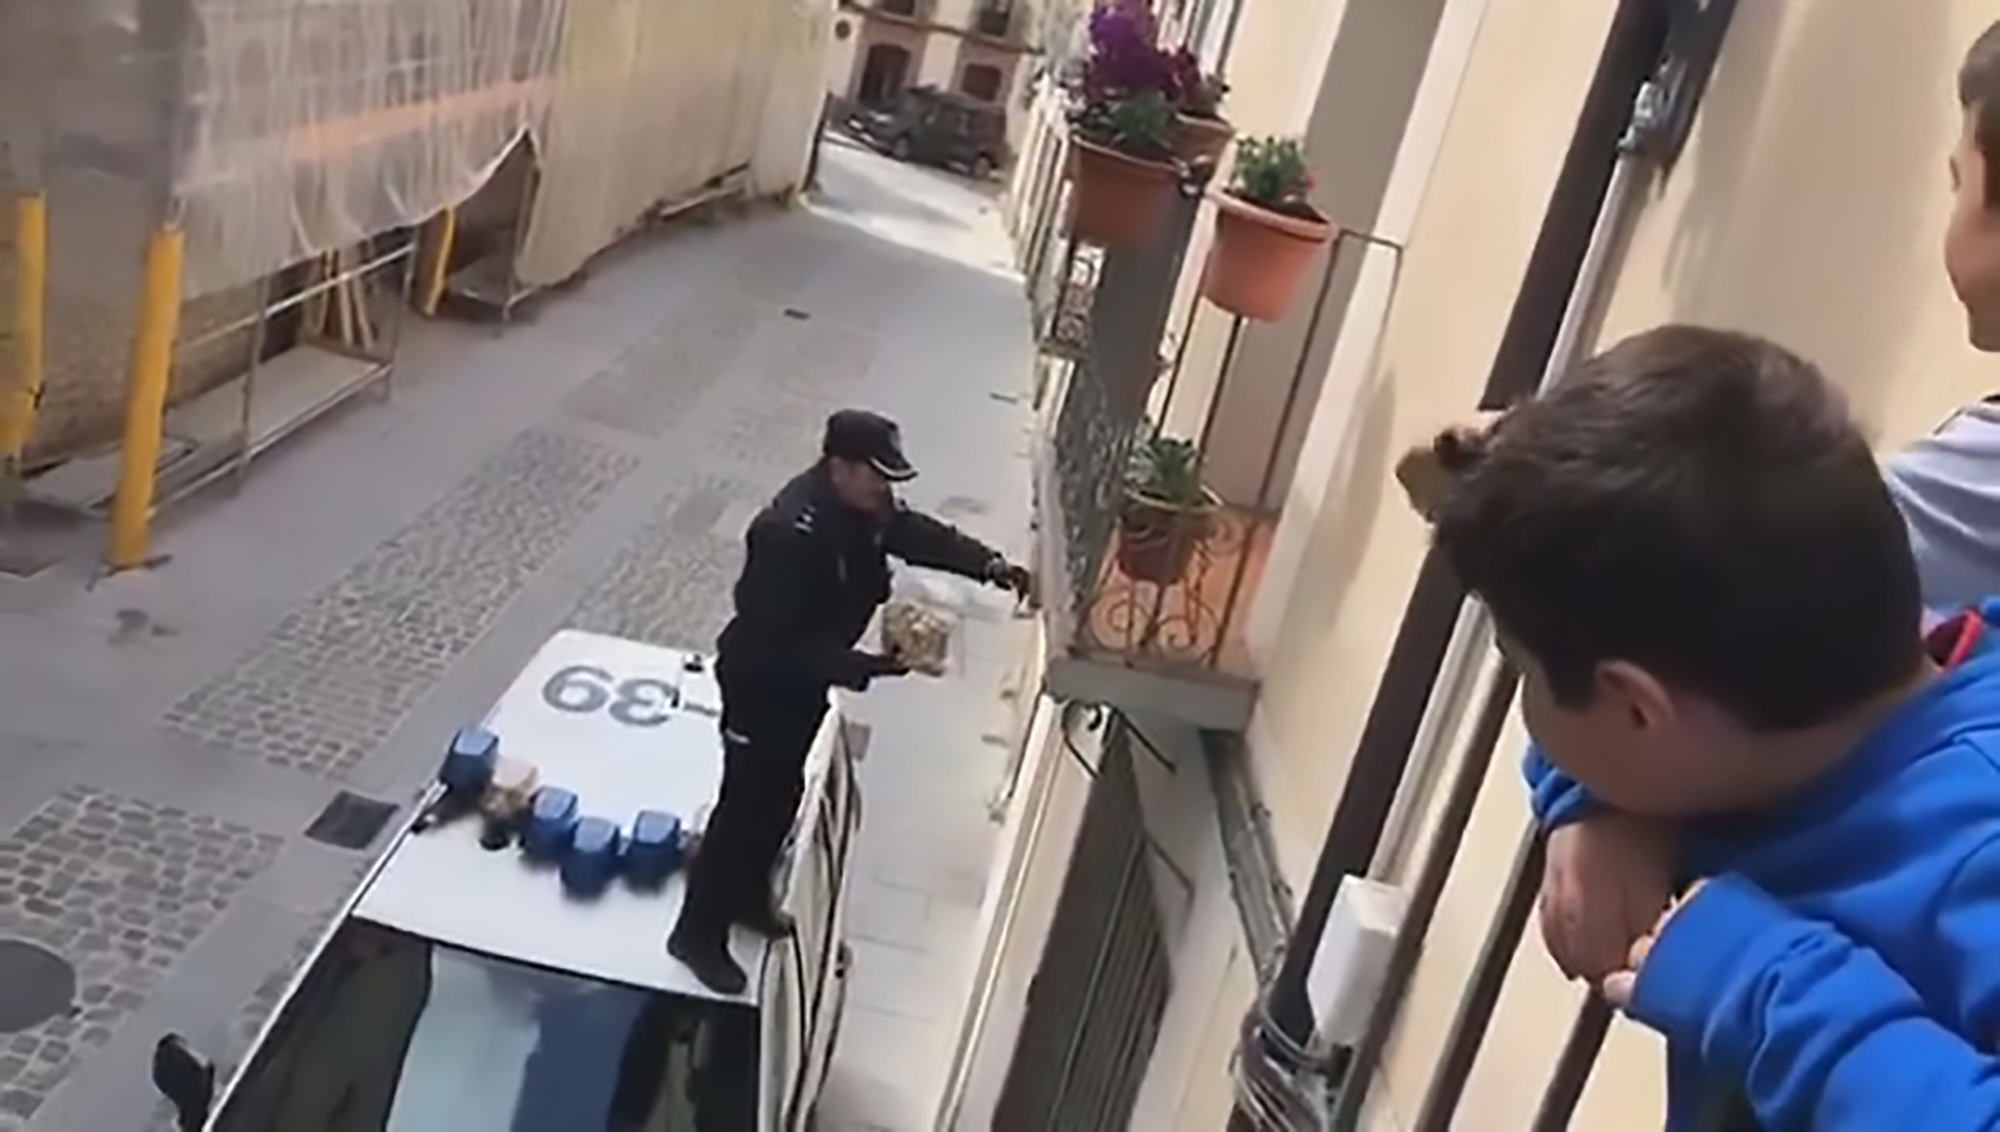 Police Officer climbs on top of car